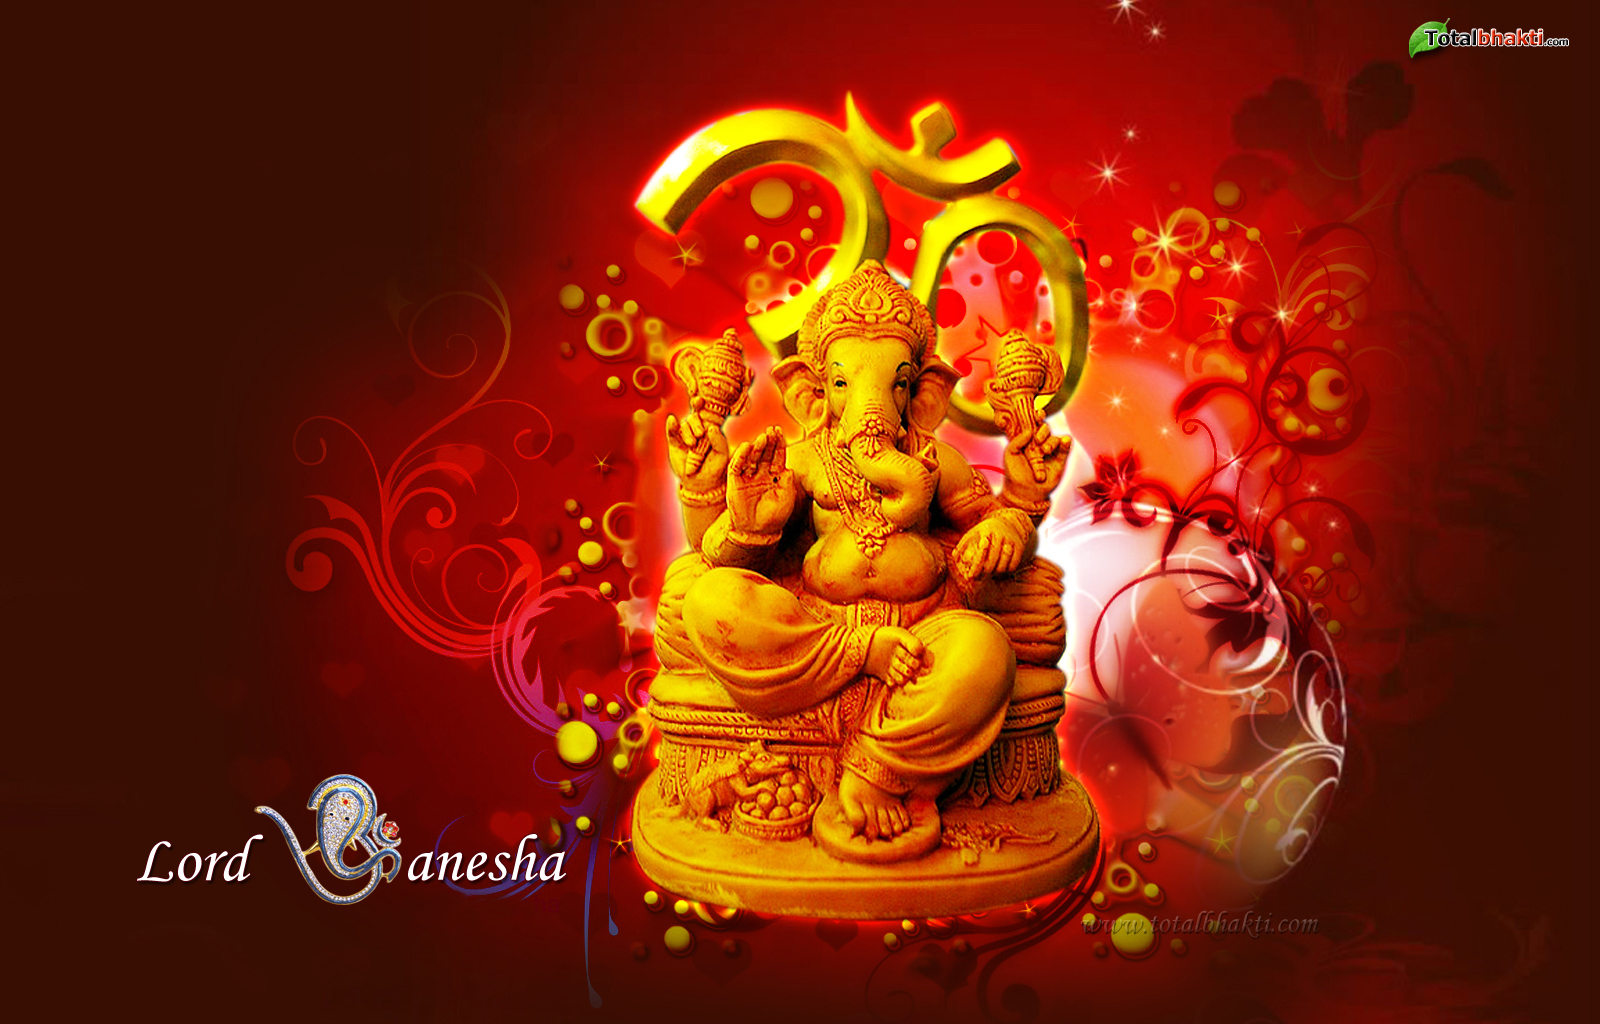 Lord Ganesh Wallpapers